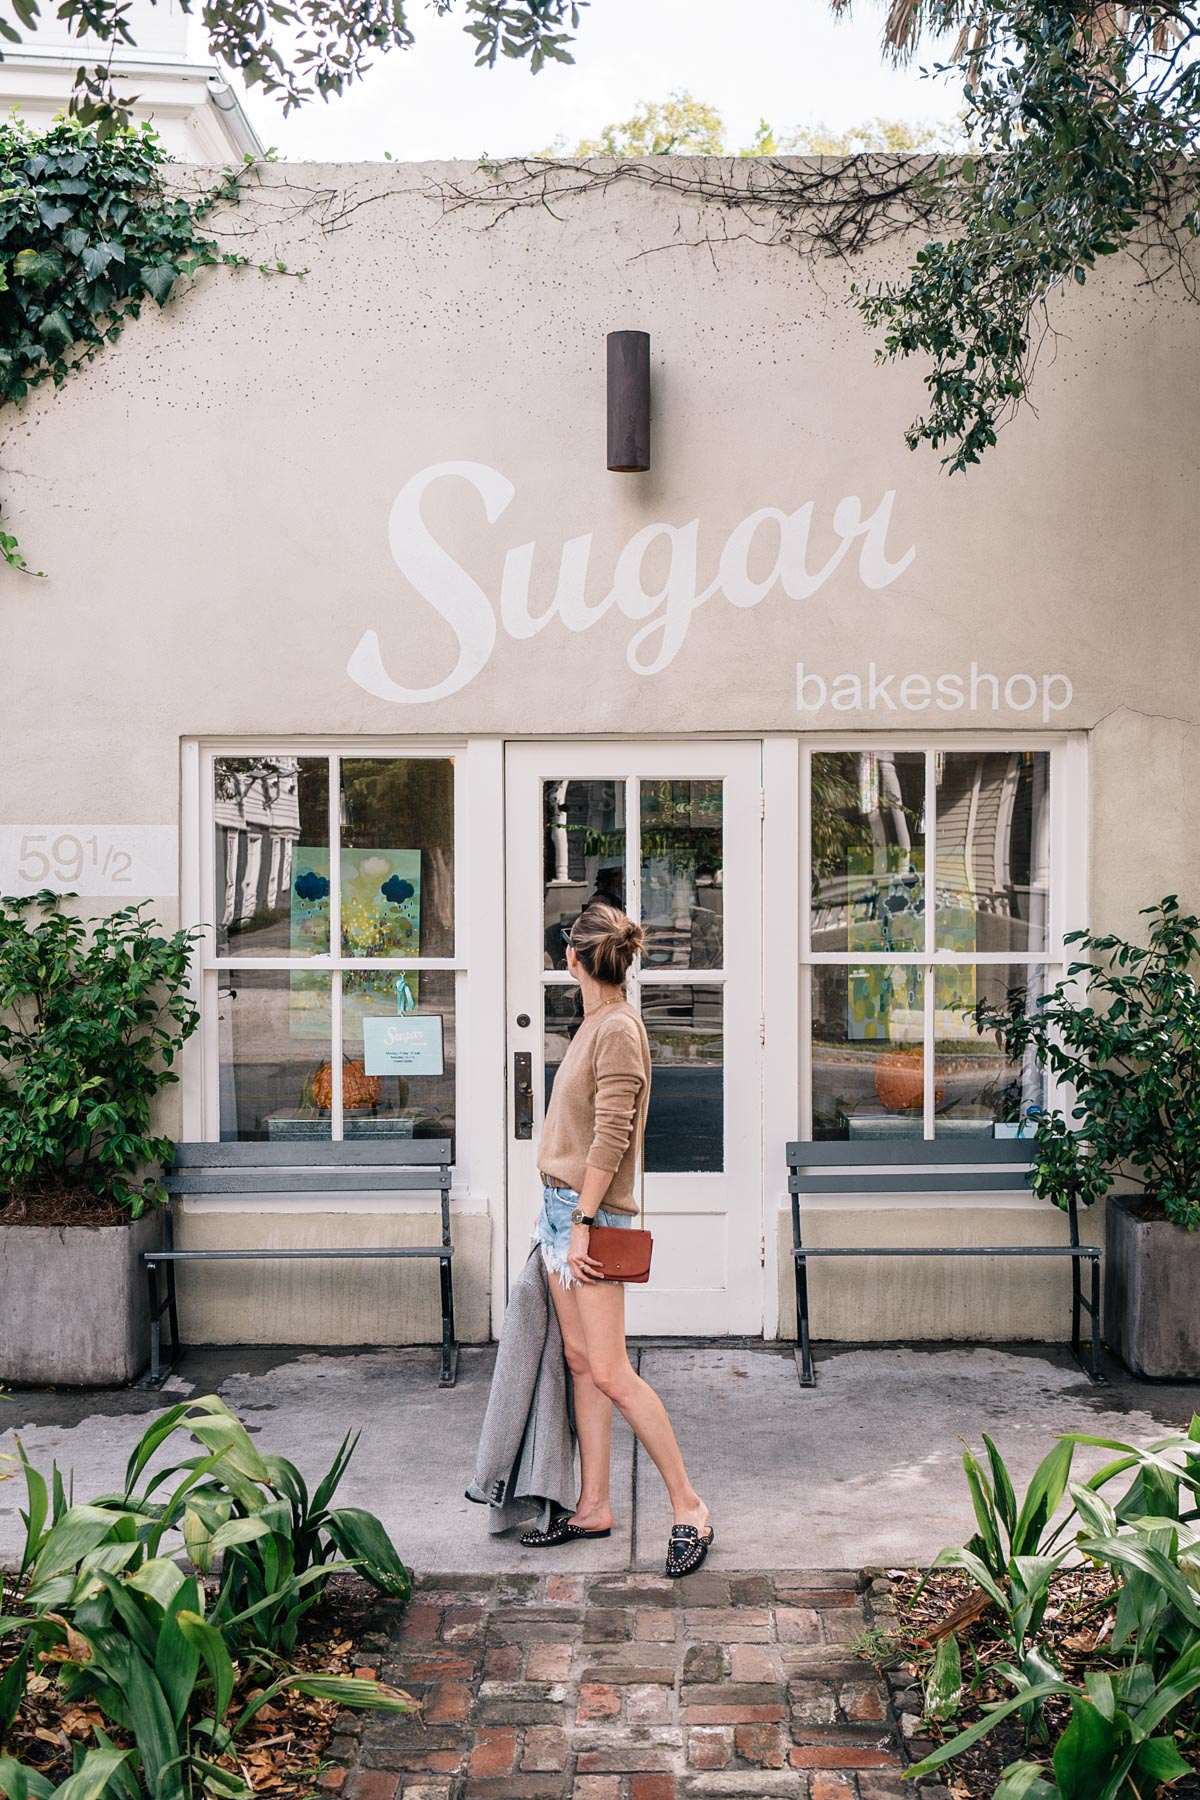 Sugar Bake Shop is worth the visit in Charleston South Carolina